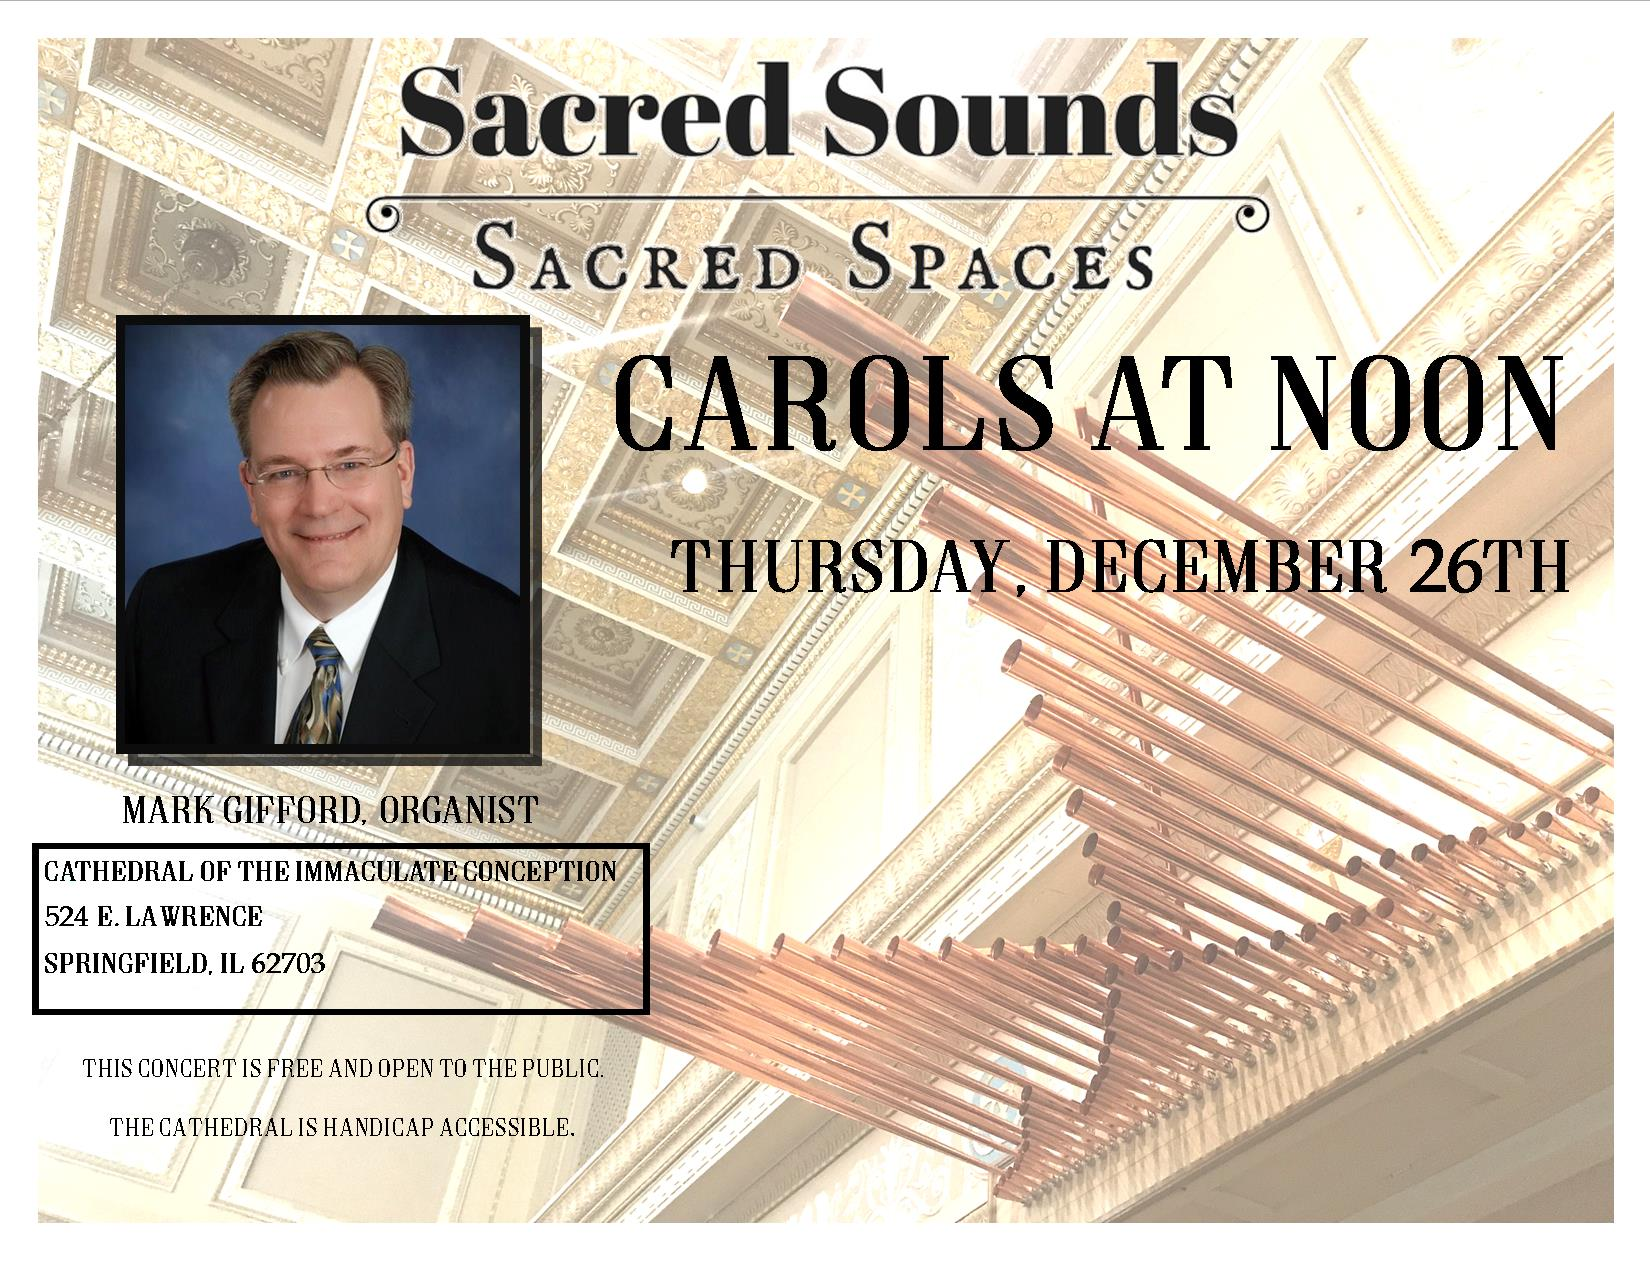 2019 Carols at Noon Ad- Thursday